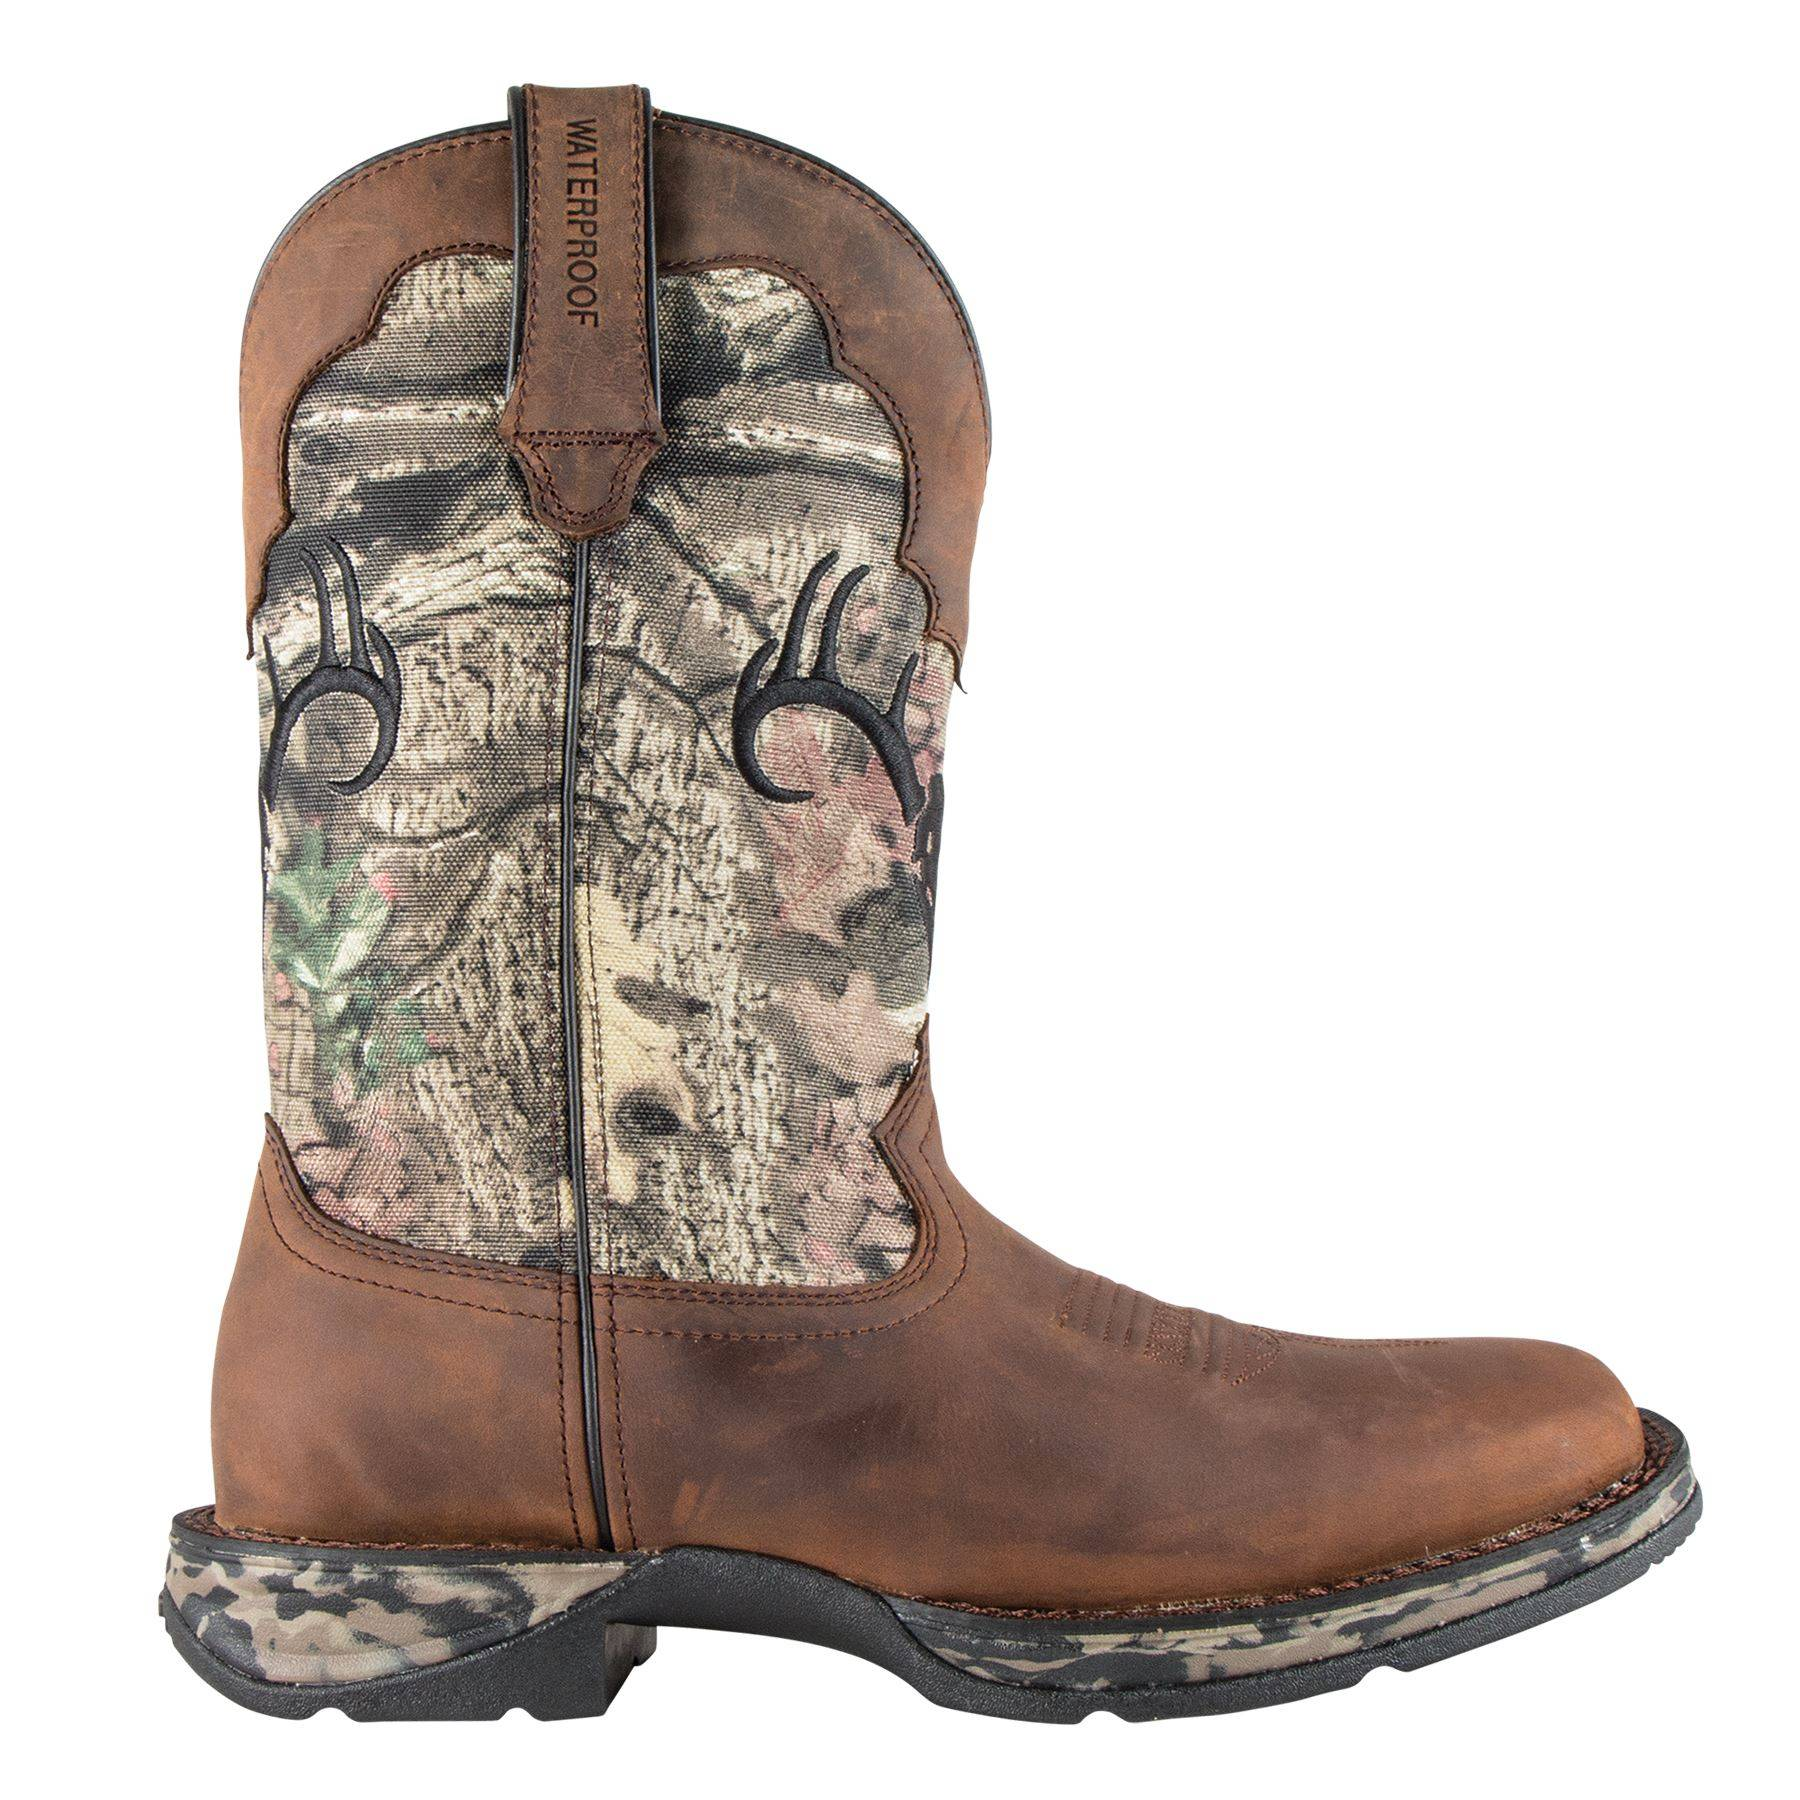 d1e43949454 Durango® Men's Waterproof Rebel Distressed Camo Boots